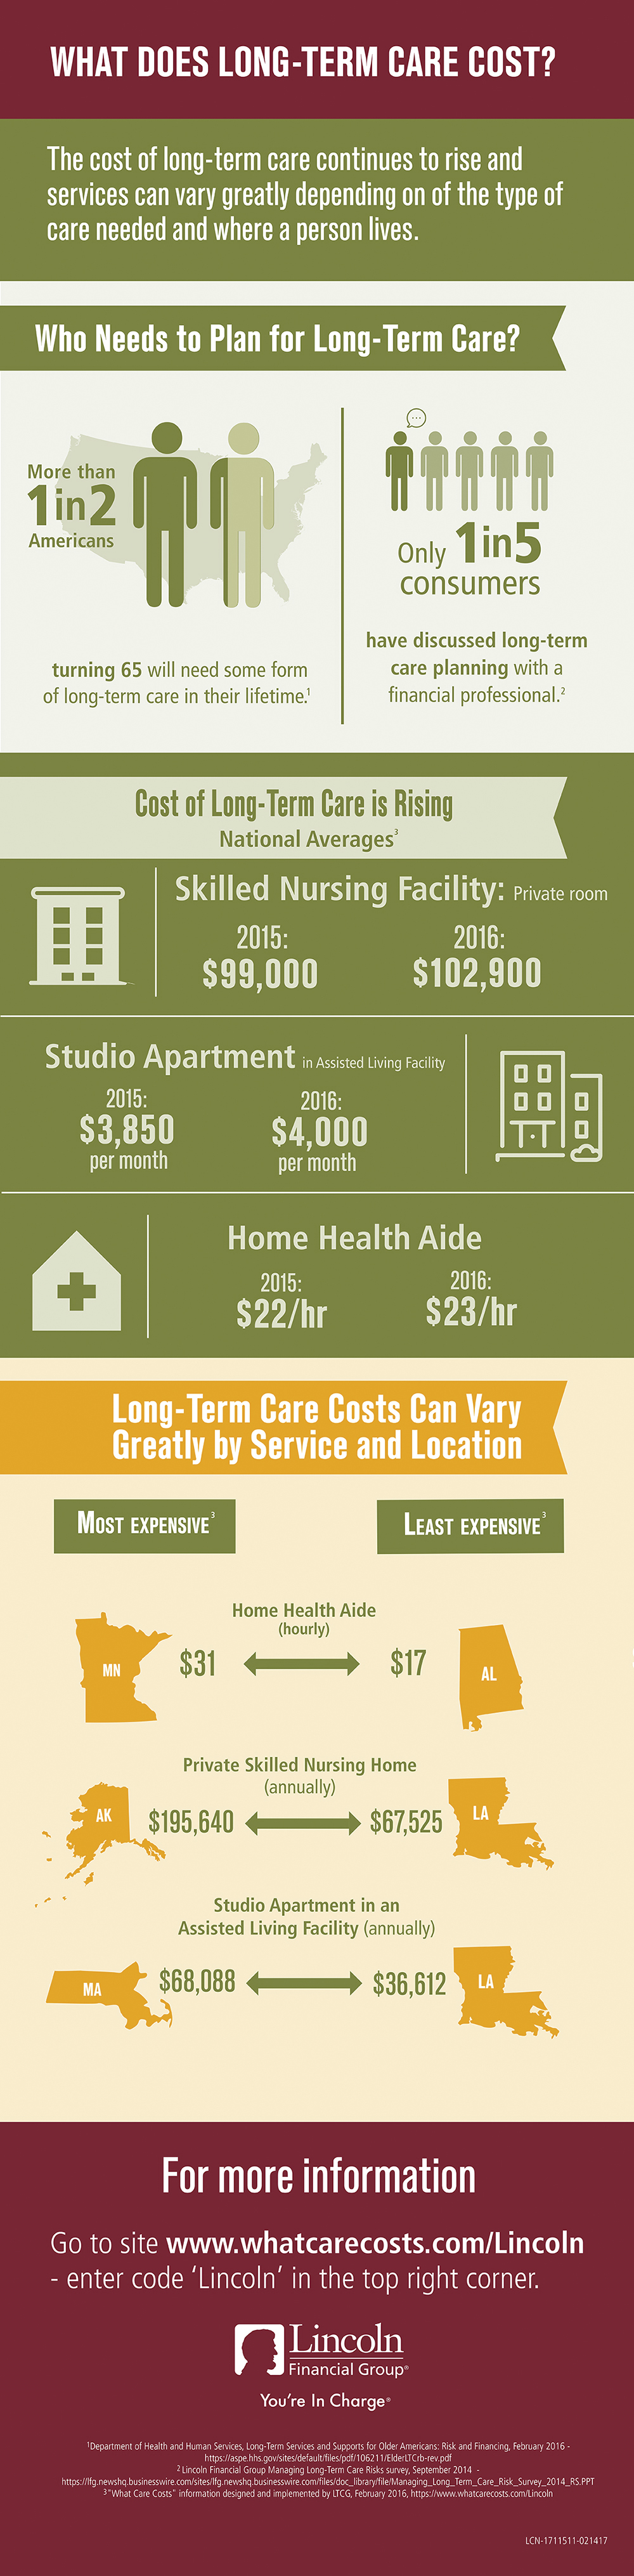 Lincoln Financial Group Annual What Care Costs Study